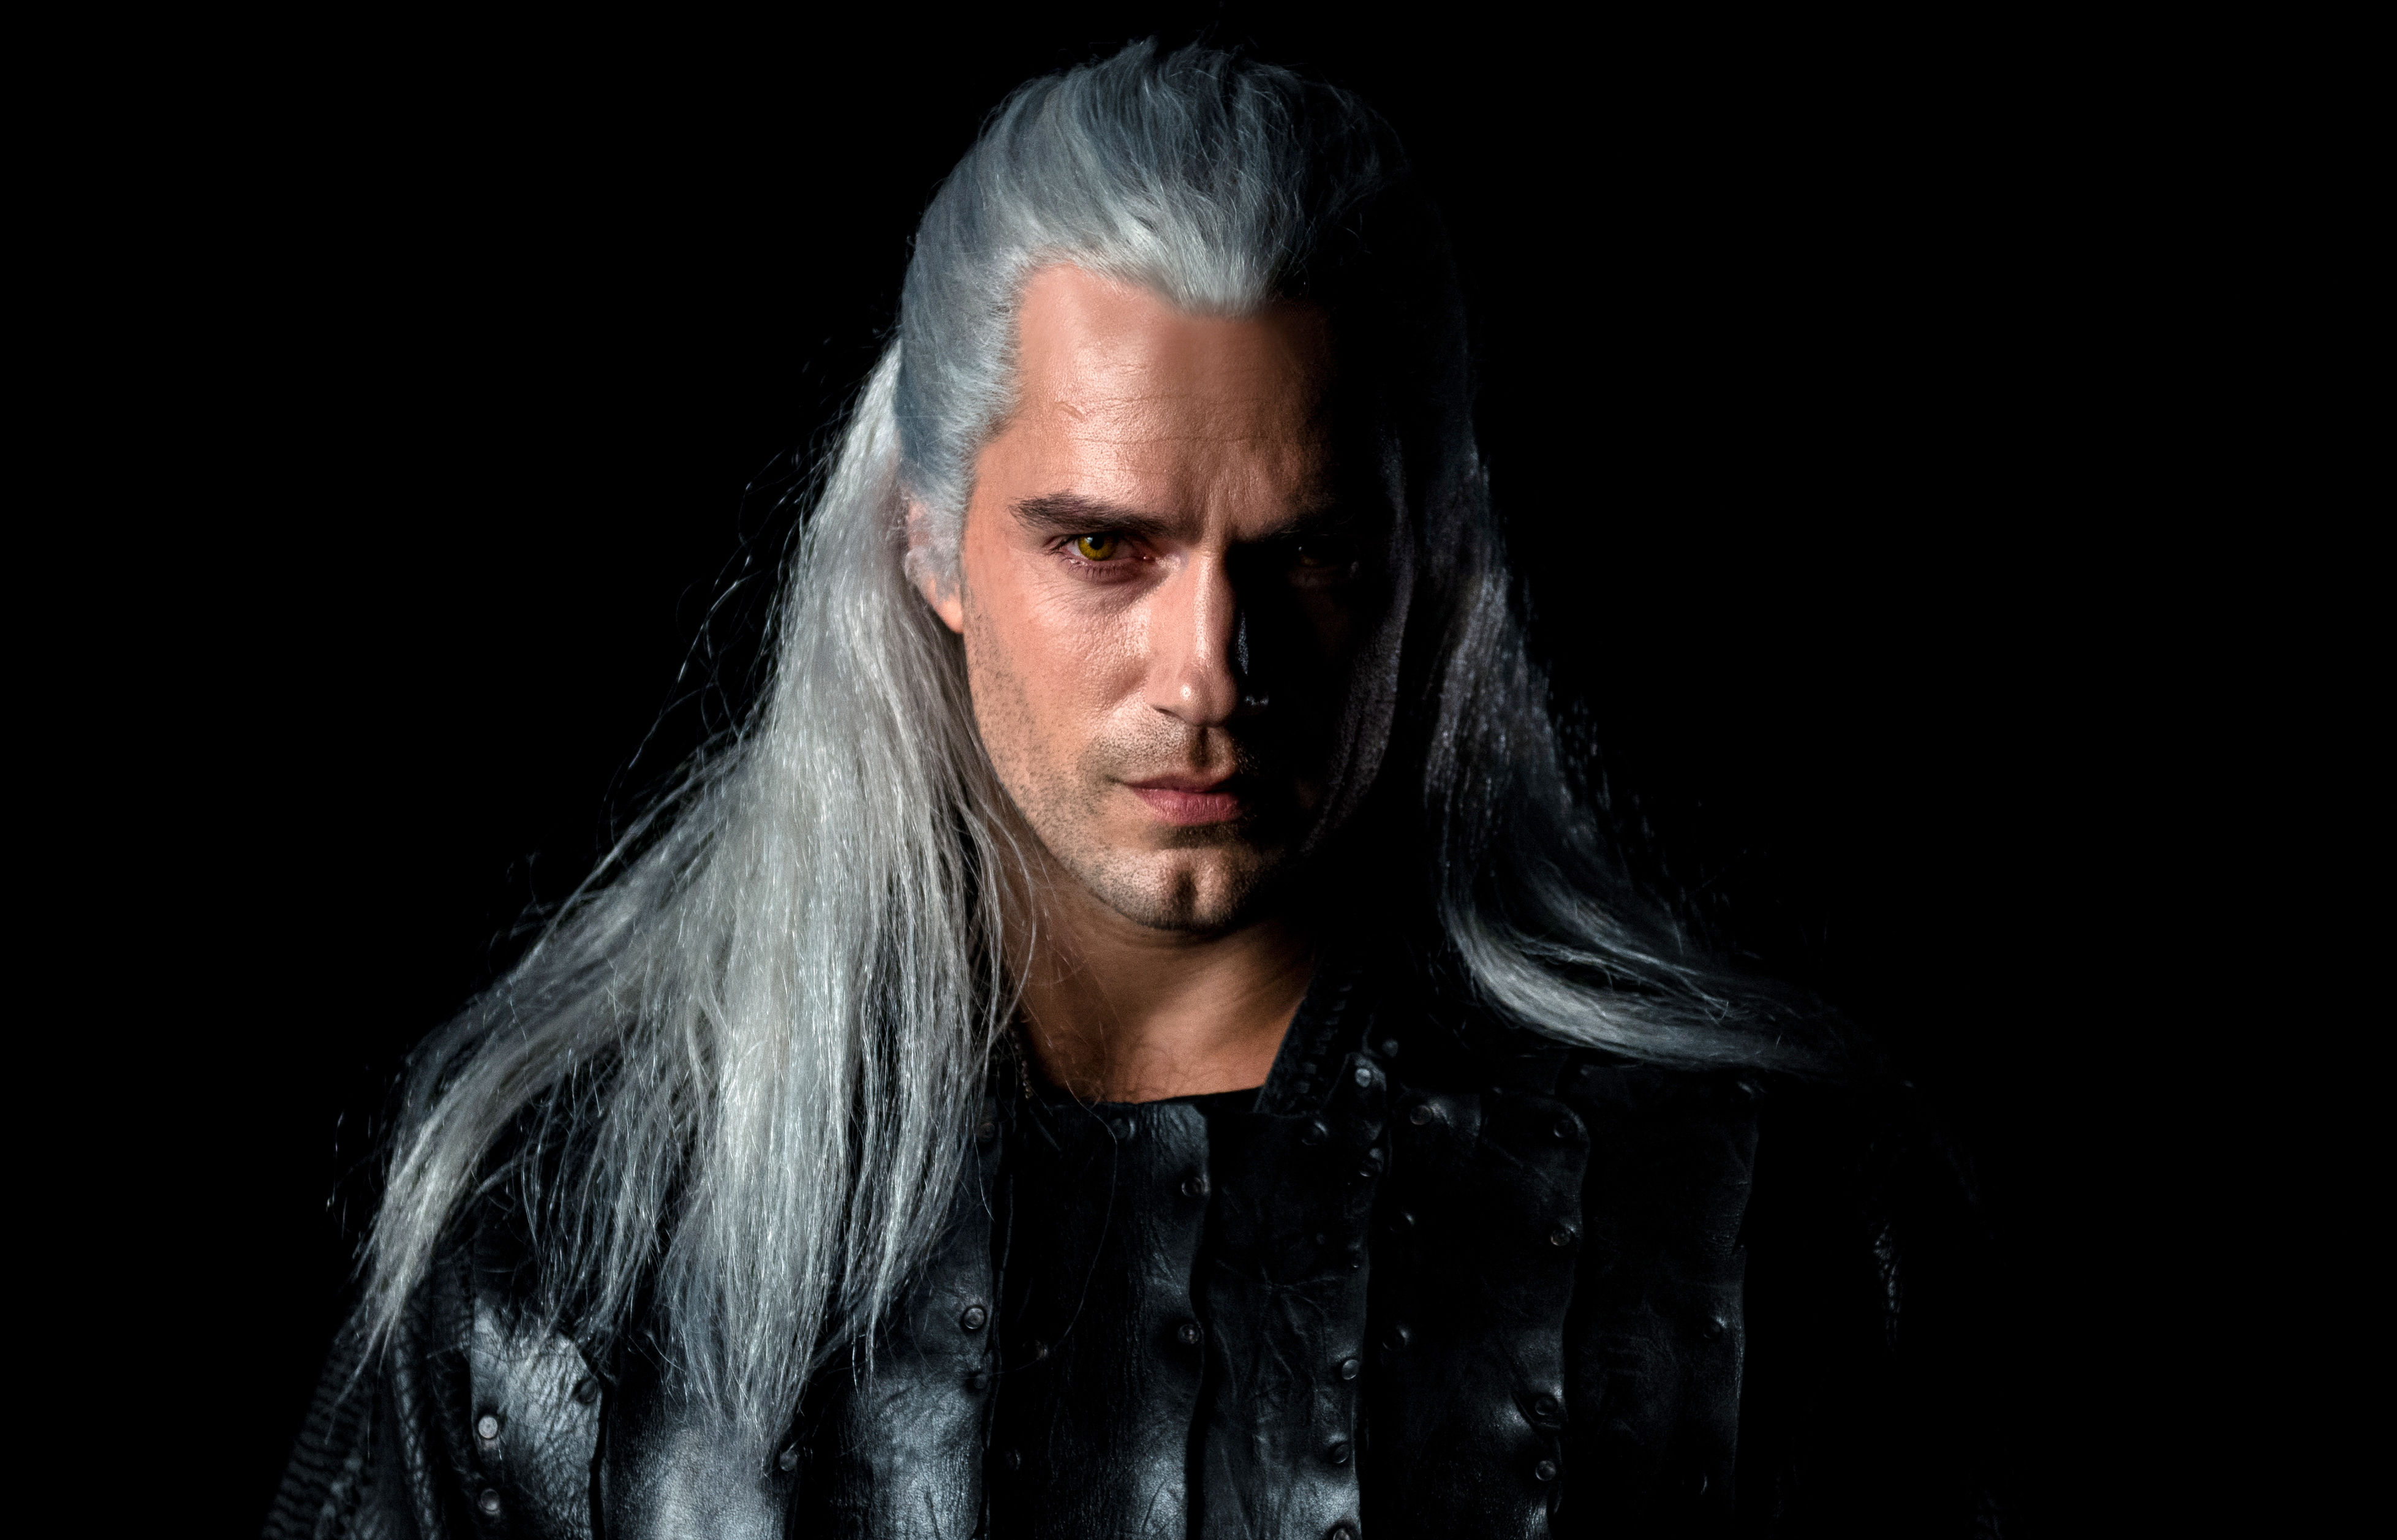 henry cavill as geralt the witcher 1576972354 - Henry Cavill As Geralt The Witcher - Yennefer wallpaper witcher 4k, Yennefer In Witcher wallpaper hd 4k, Yennefer In Witcher wallpaper